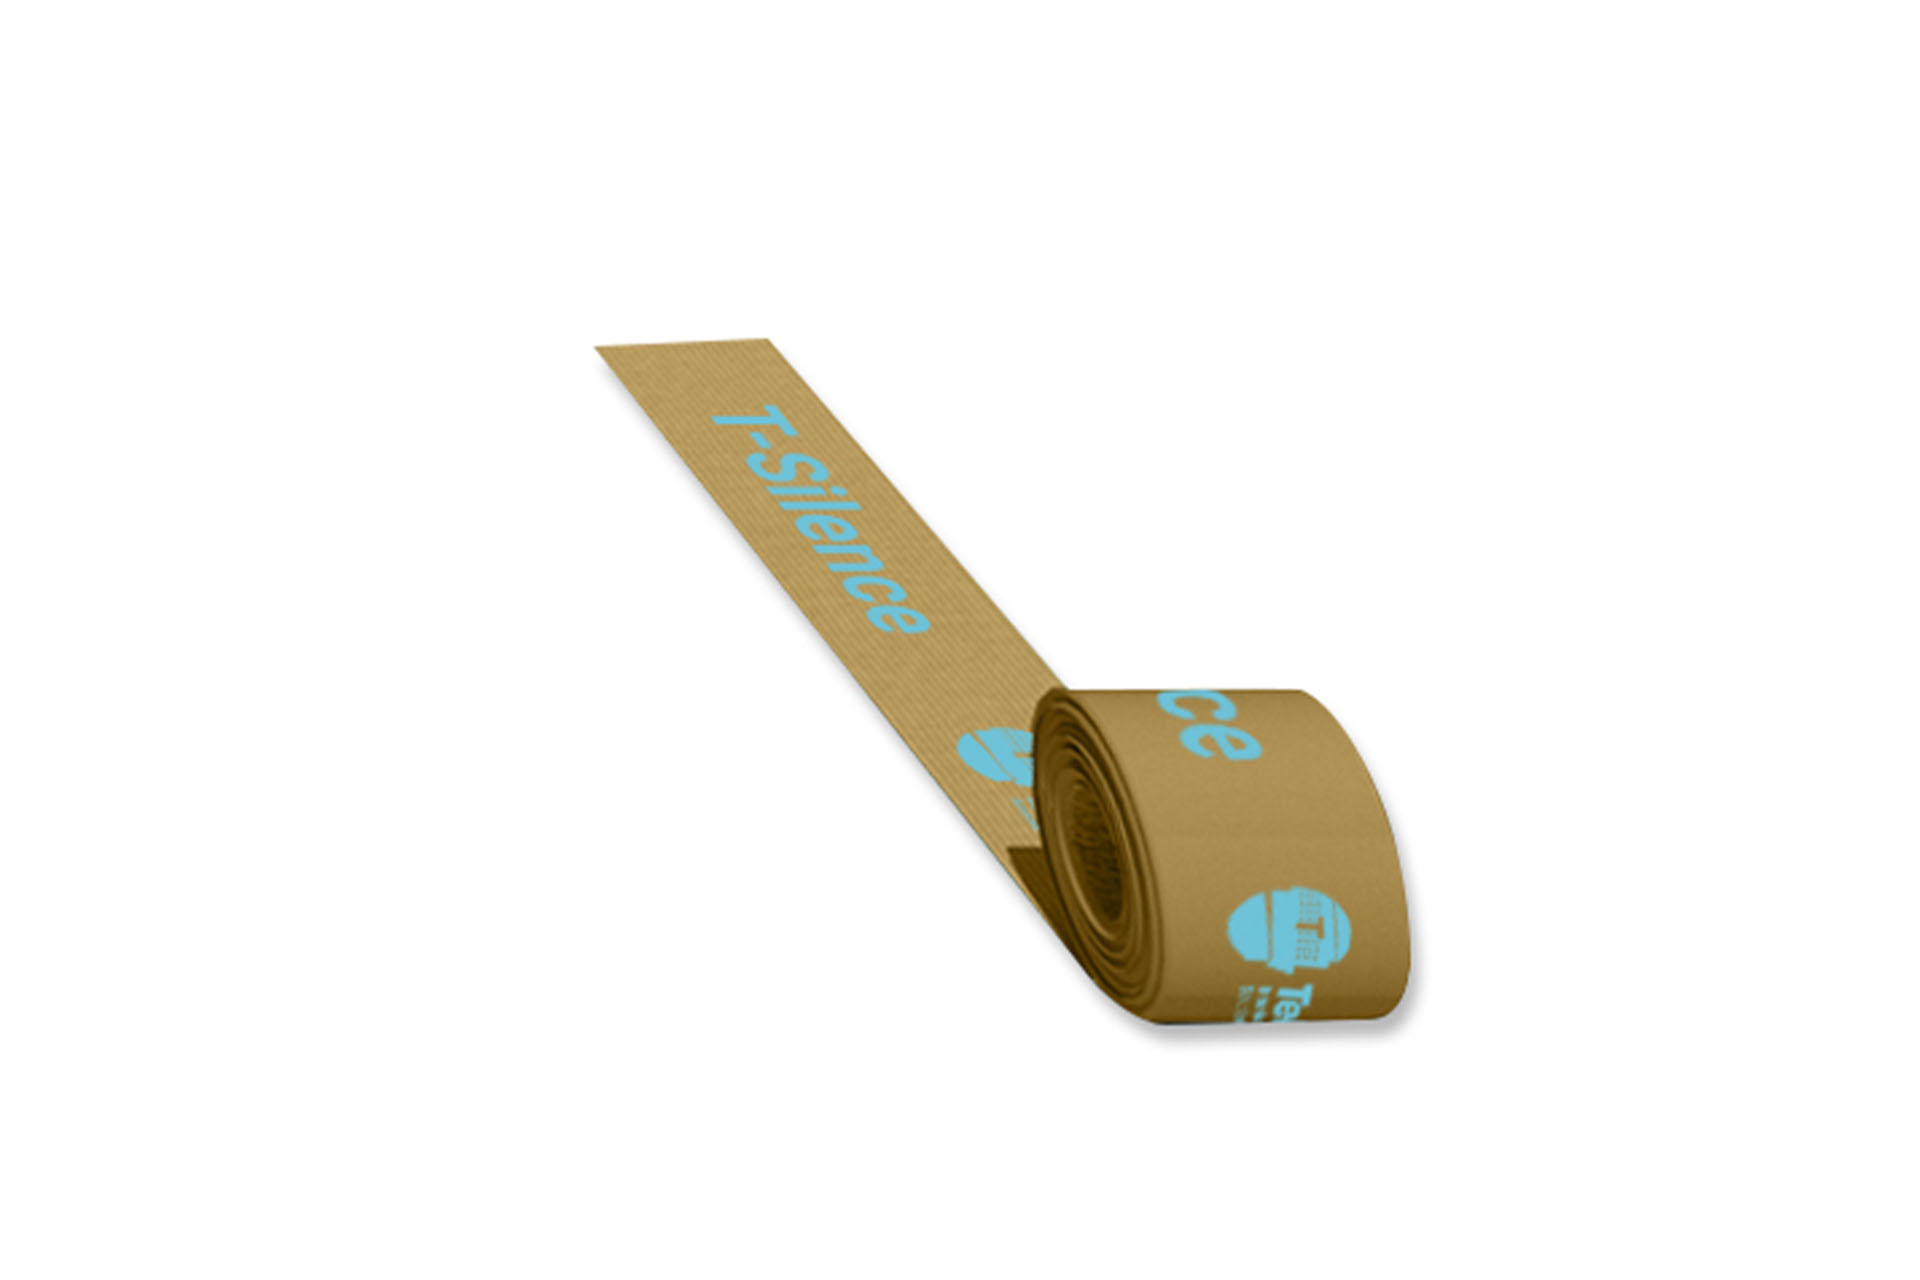 Paper adhesive tape for acoustic insulation